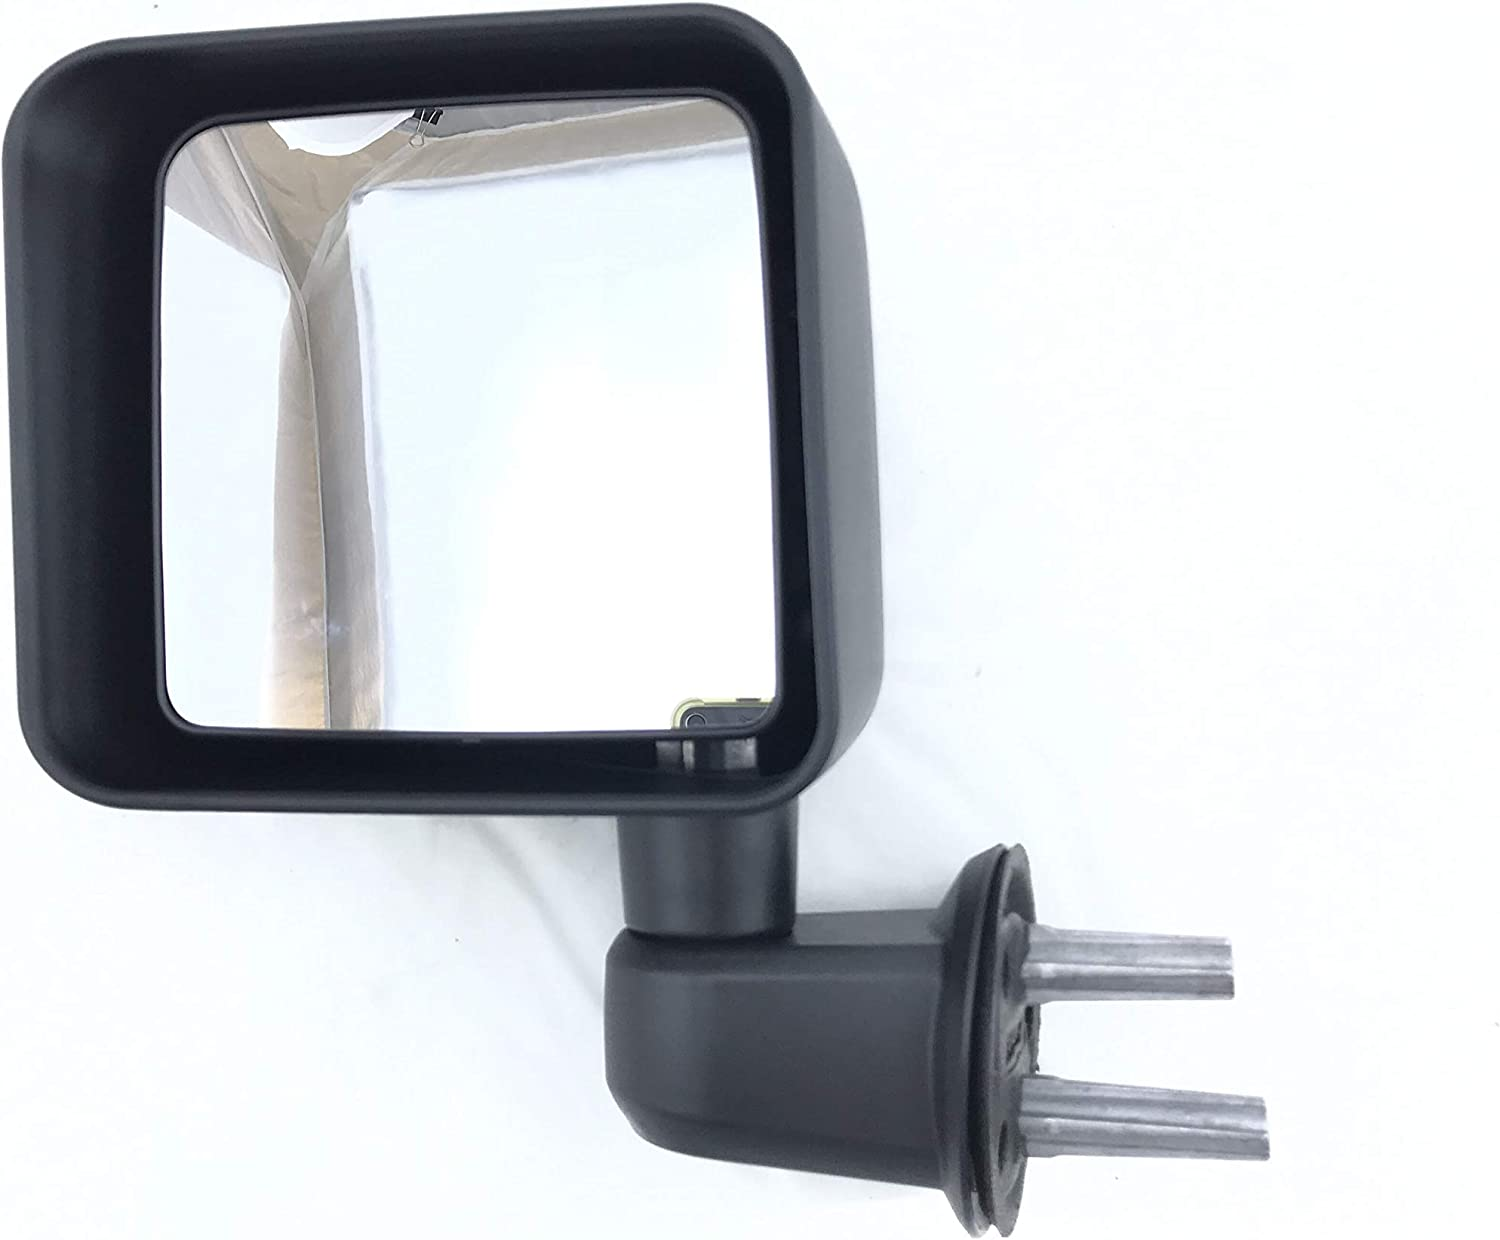 Parts Link #: 55077967AF Passenger Side Mirror for JEEP RANGLER 07-11 SWING AWAY TYPE MAN MIR LH OE: CH1320271 TEXTURED | Left Outside Rear View Mirror